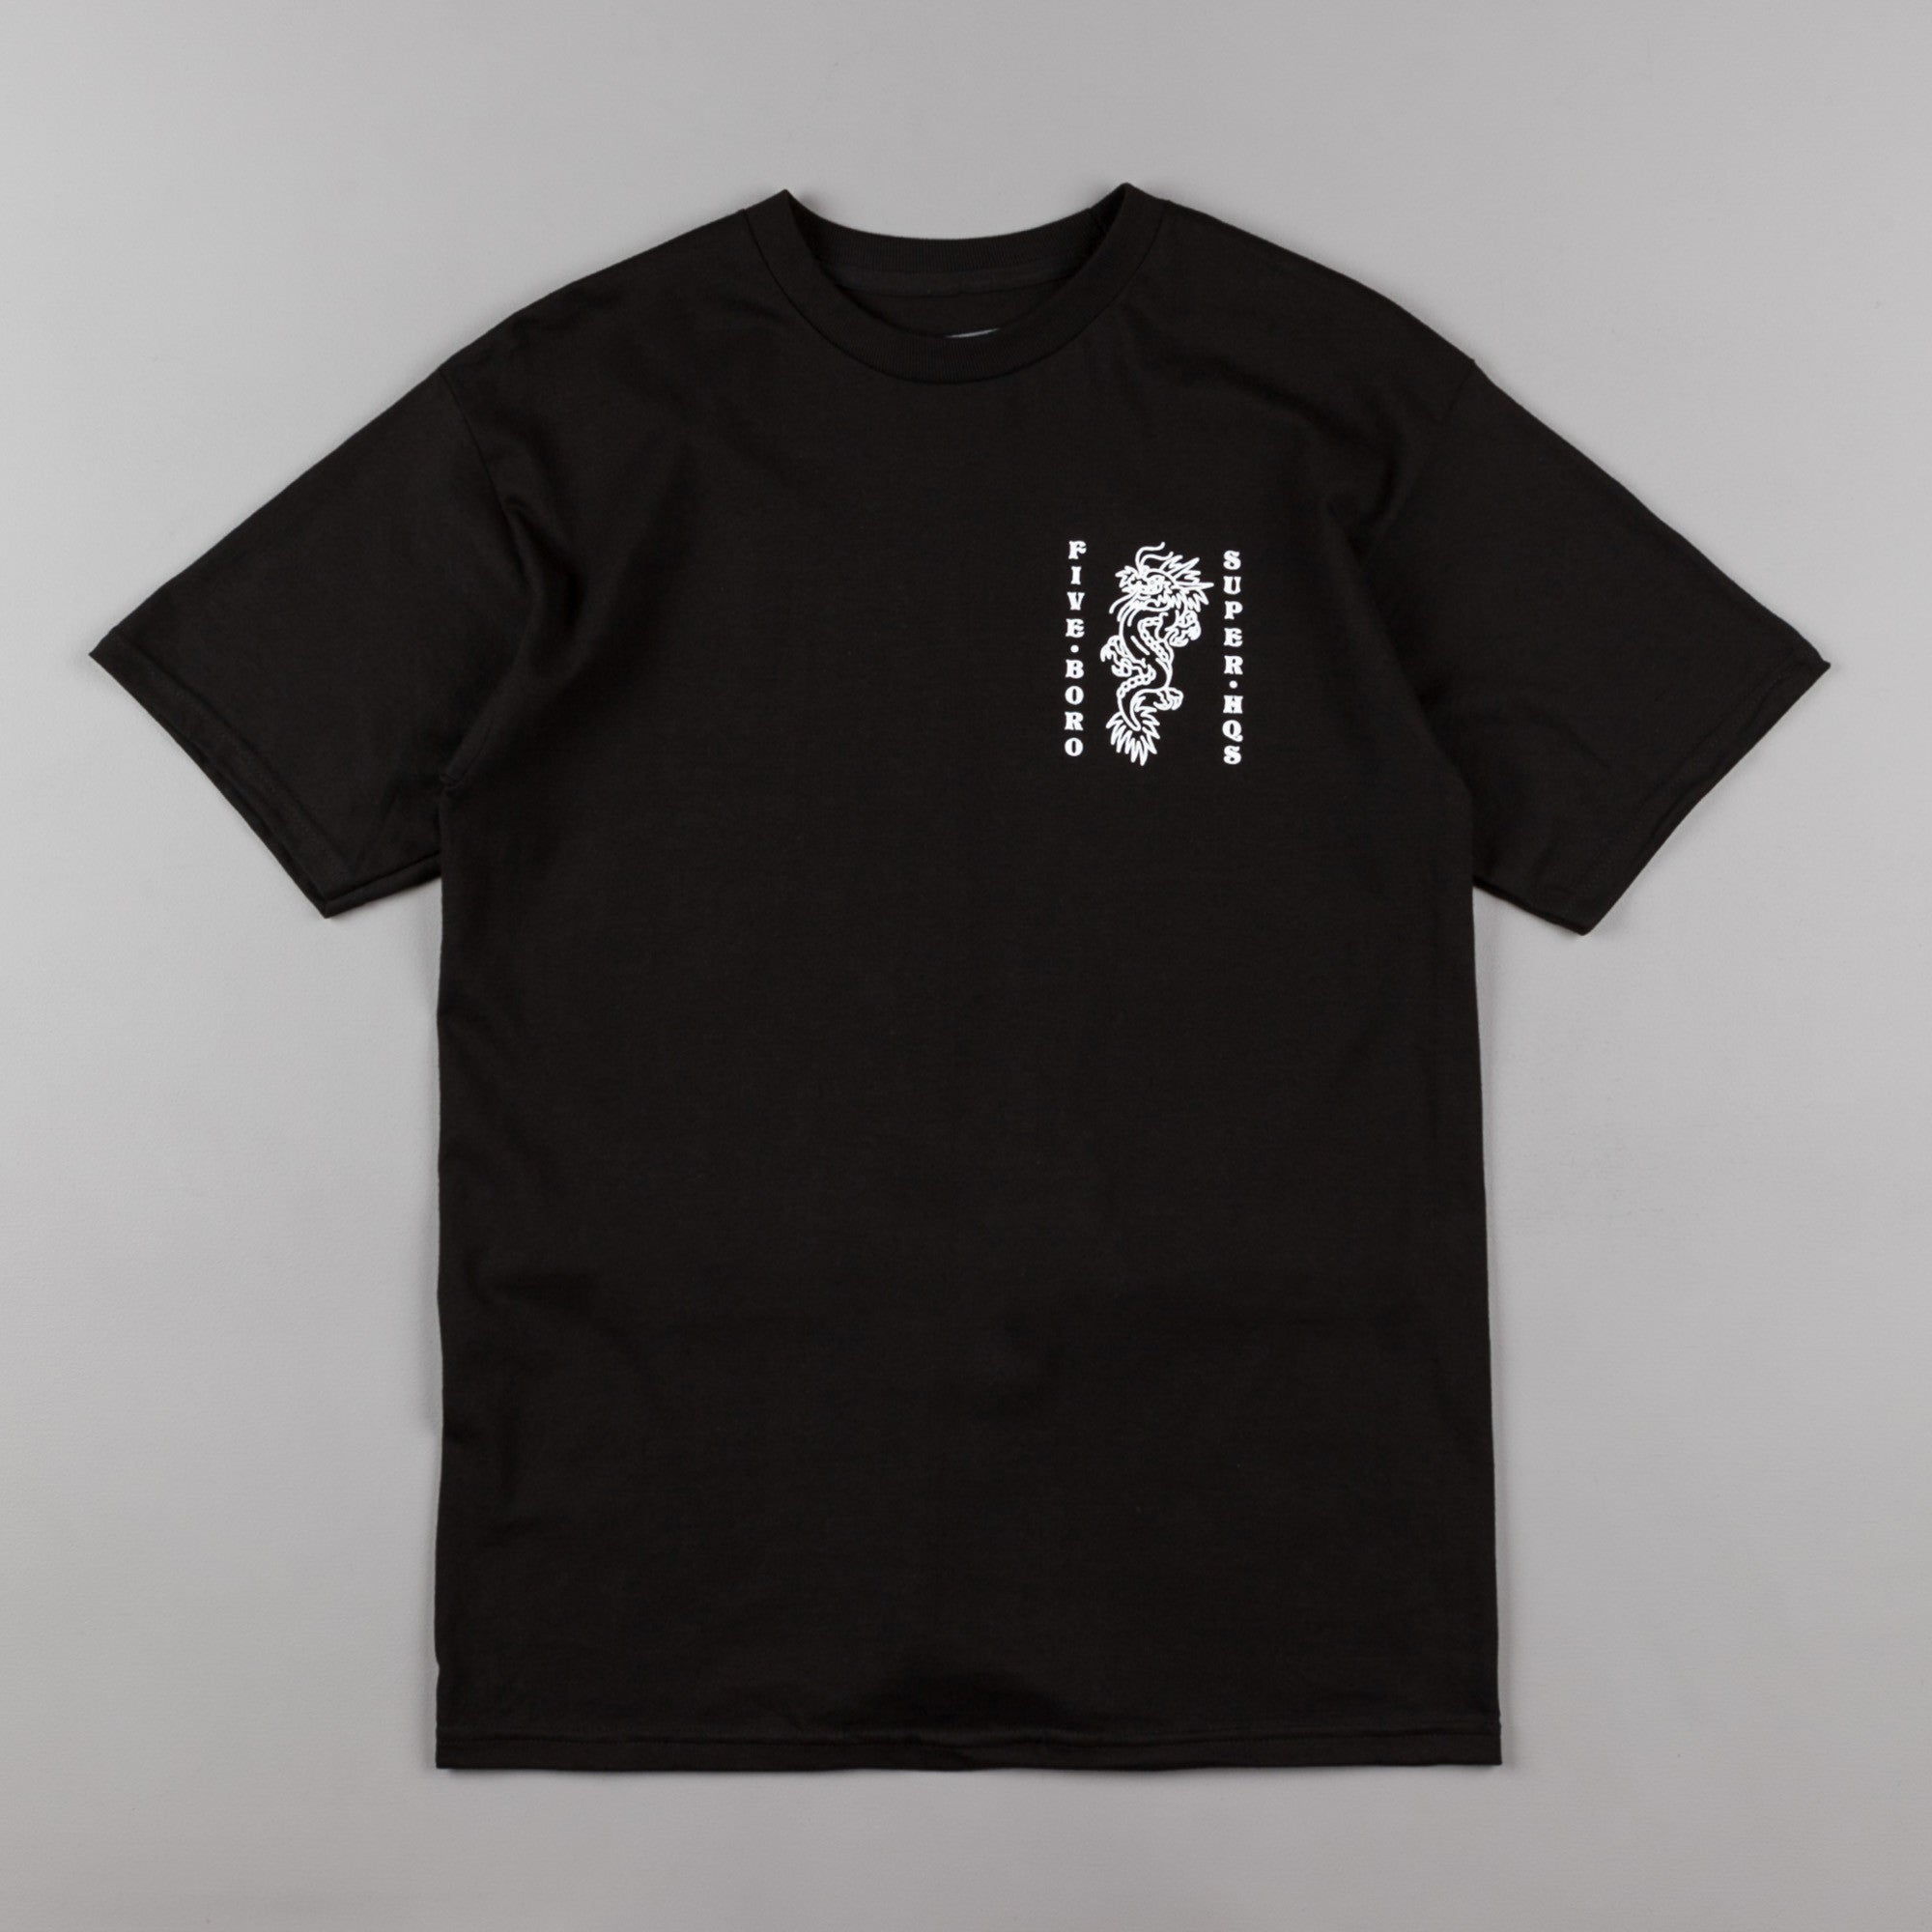 5Boro Dragon T-Shirt - Black